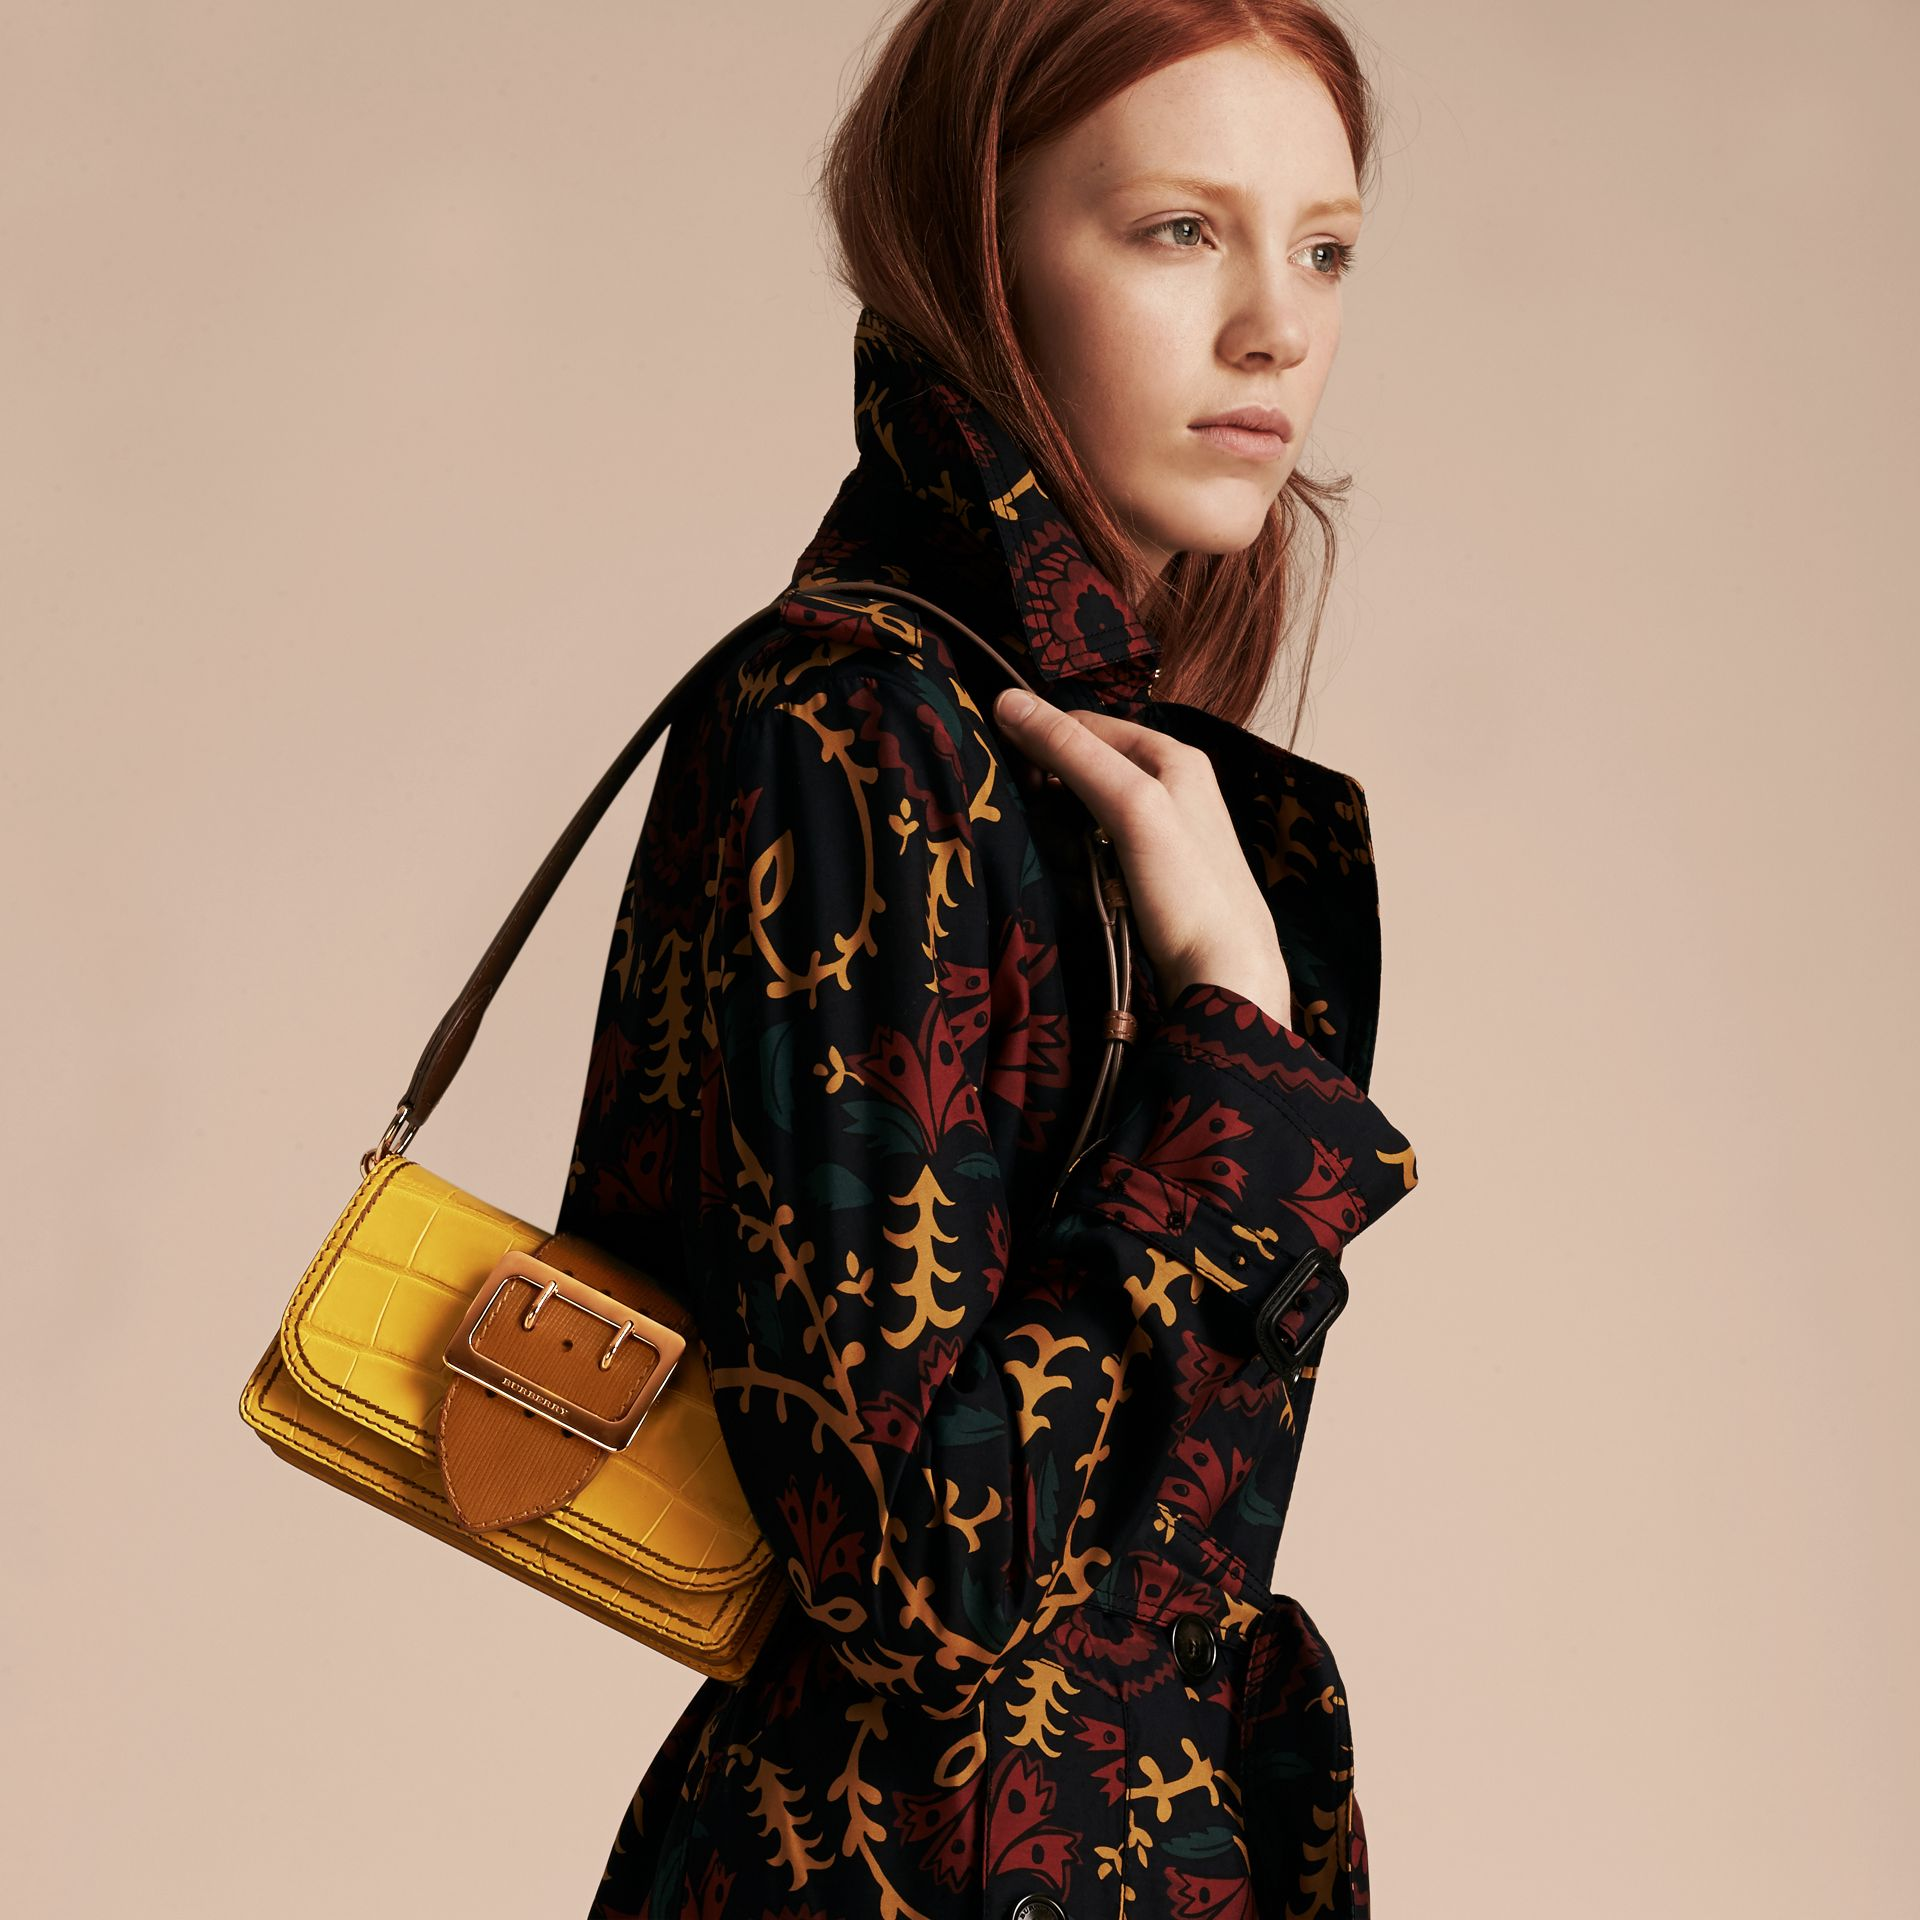 The Small Buckle Bag in Alligator and Leather in Citrus Yellow / Tan - Women | Burberry Canada - gallery image 3